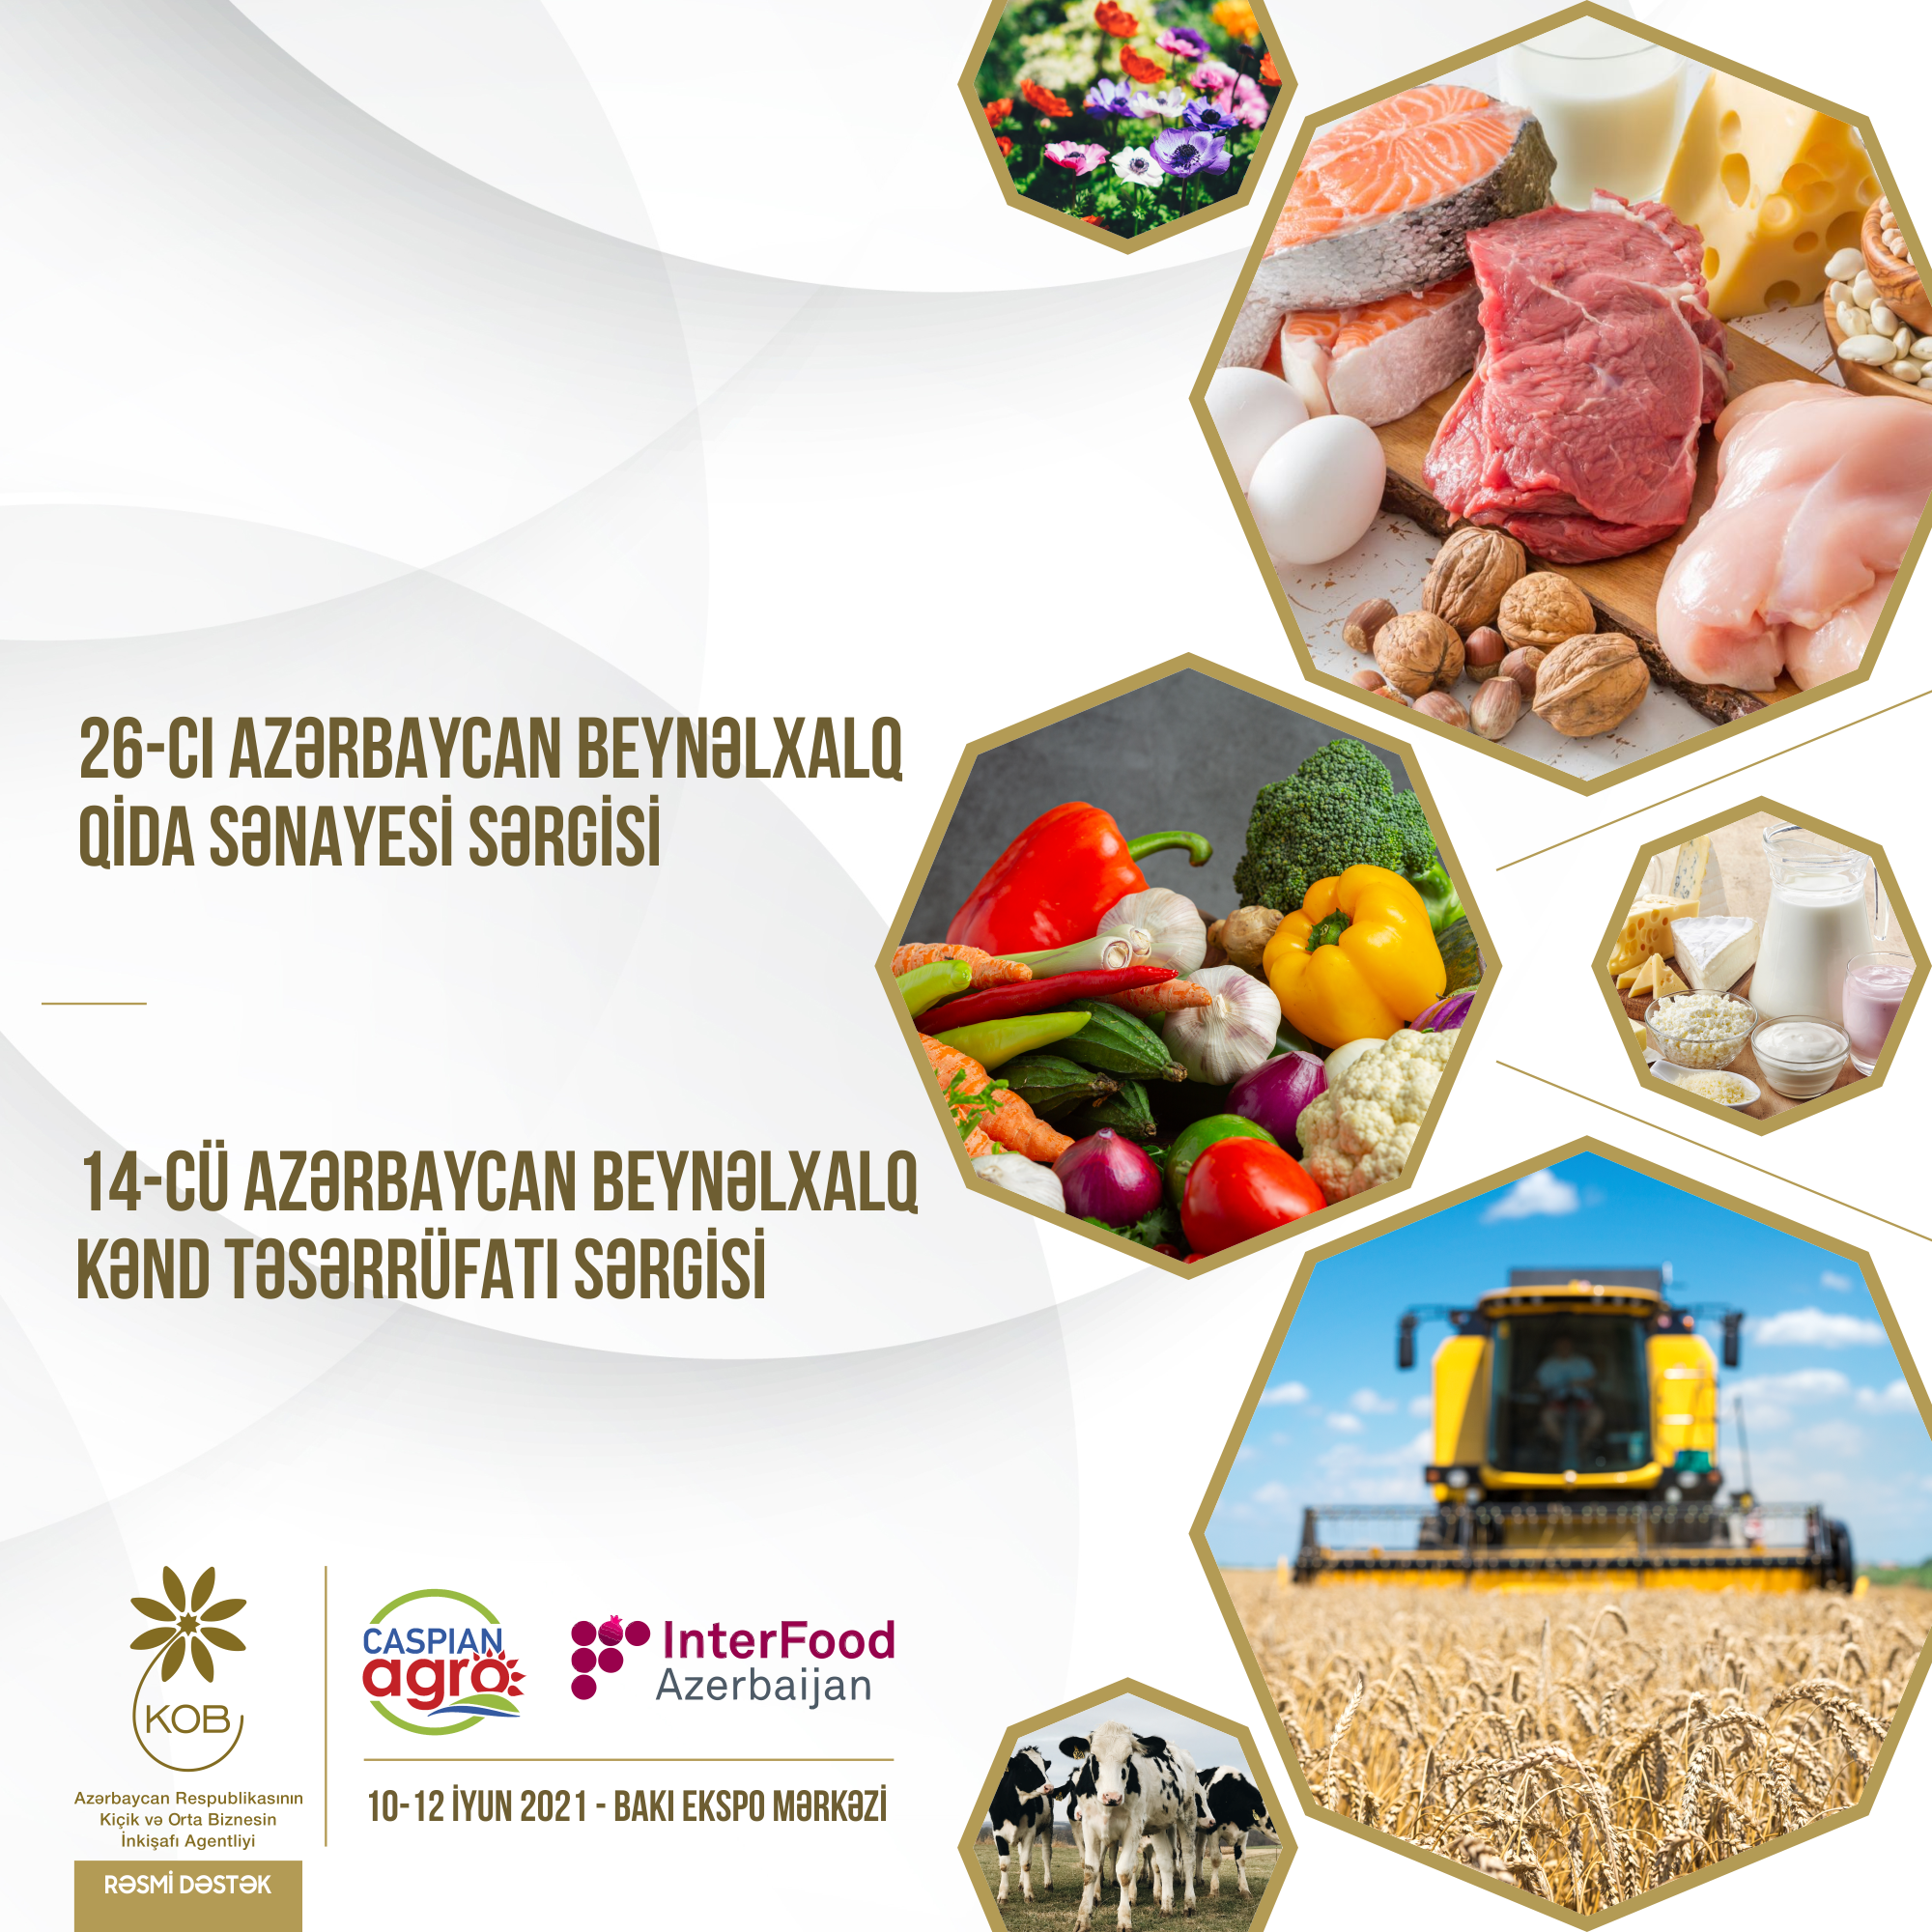 """KOBIA supports """"Caspian Agro 2021"""" and """"InterFood Azerbaijan 2021"""" exhibitions"""